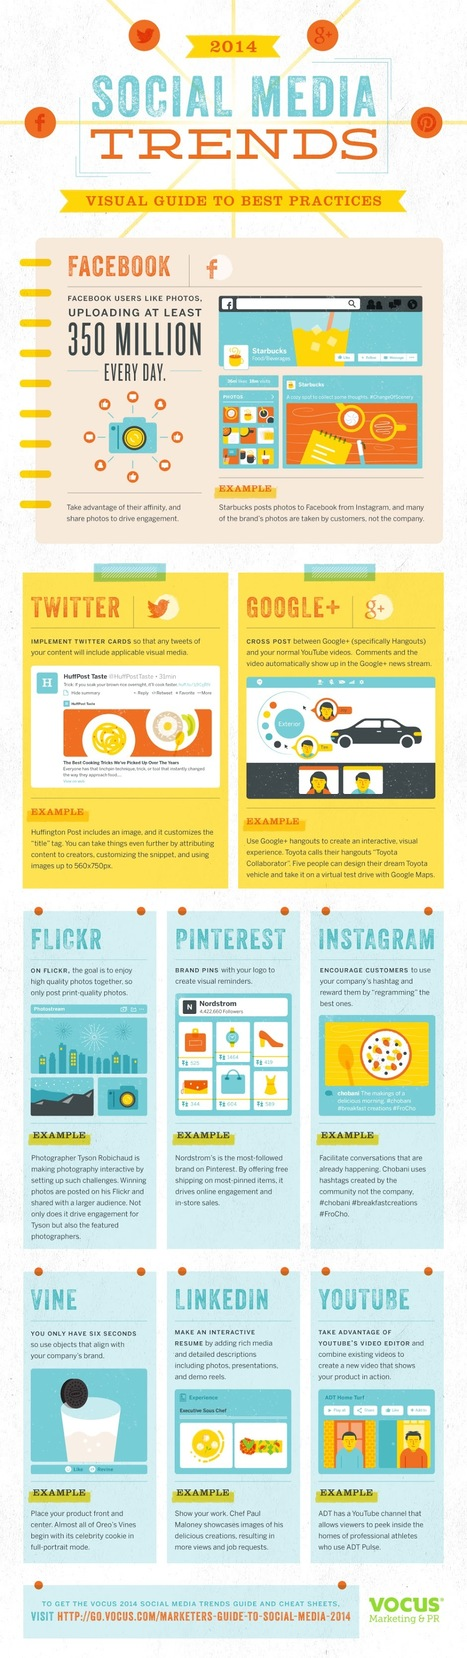 Social Media Marketing Trends And Best Practices 2014 - infographic - Digital Information World | Marketing and Technology | Scoop.it